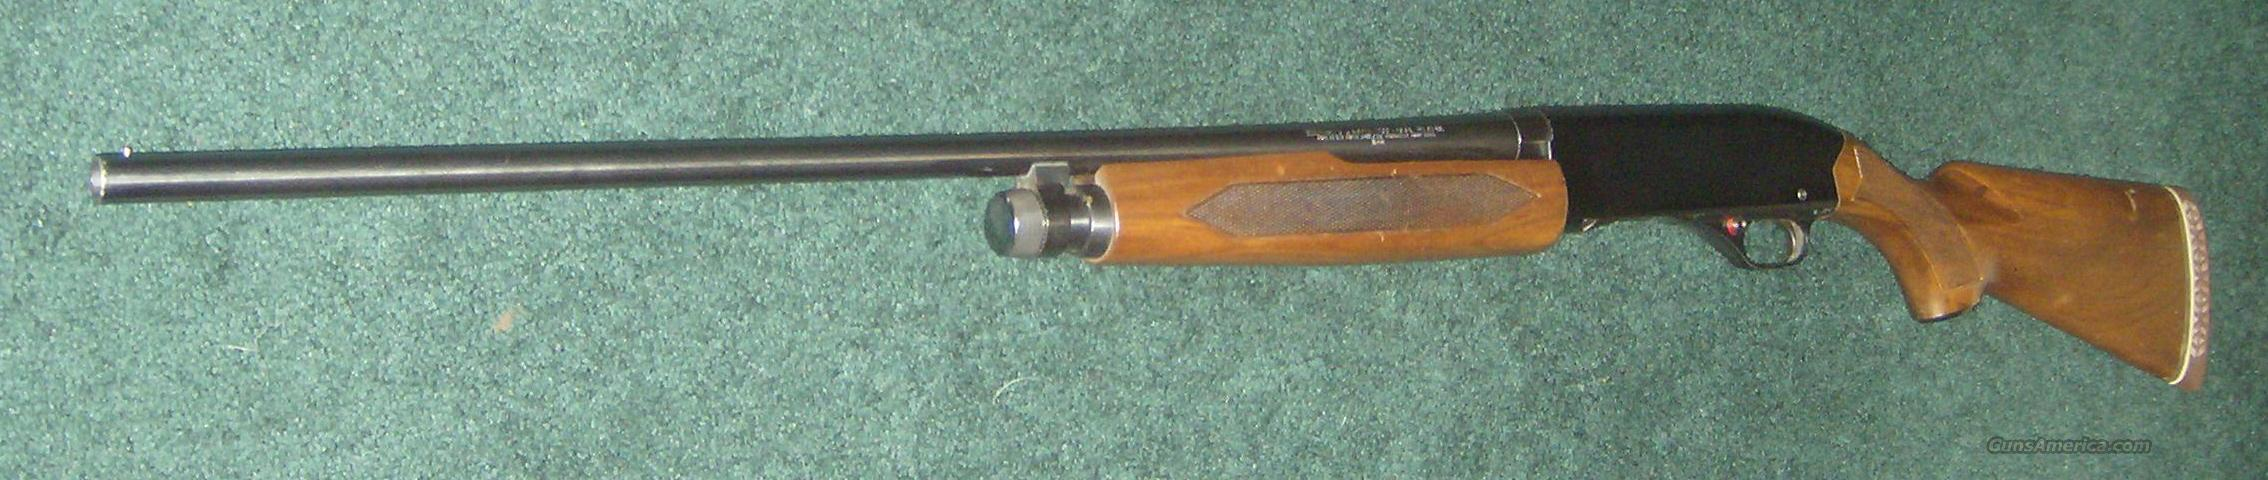 Winchester Model 1200 - 20 Gauge  Guns > Shotguns > Winchester Shotguns - Modern > Pump Action > Hunting